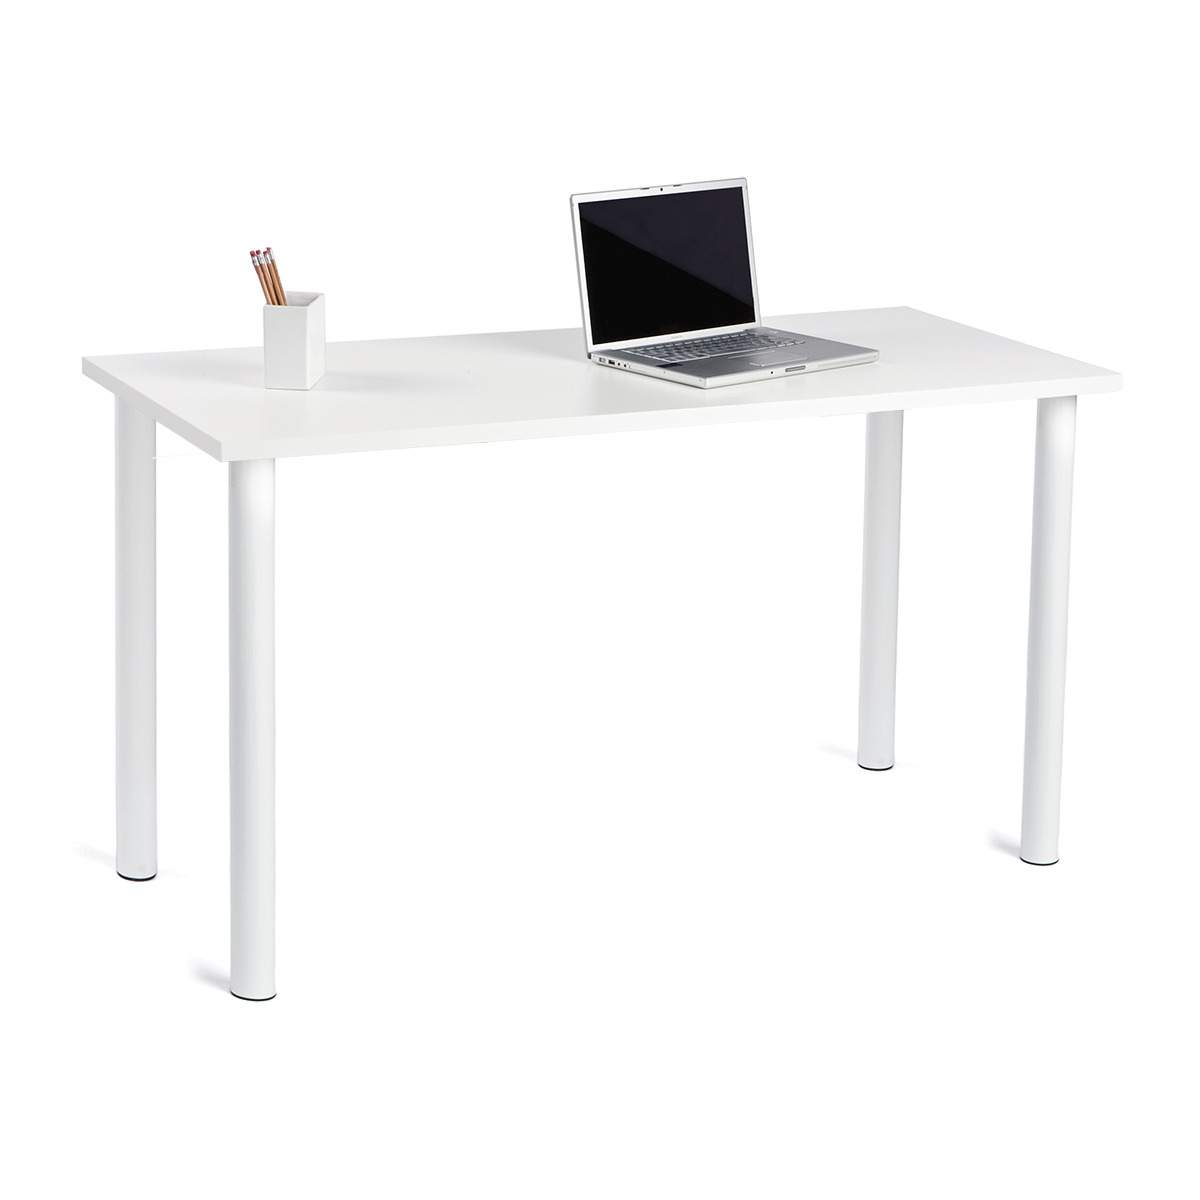 Custom Desk  Design Your Own Customized Desk  The Container Store